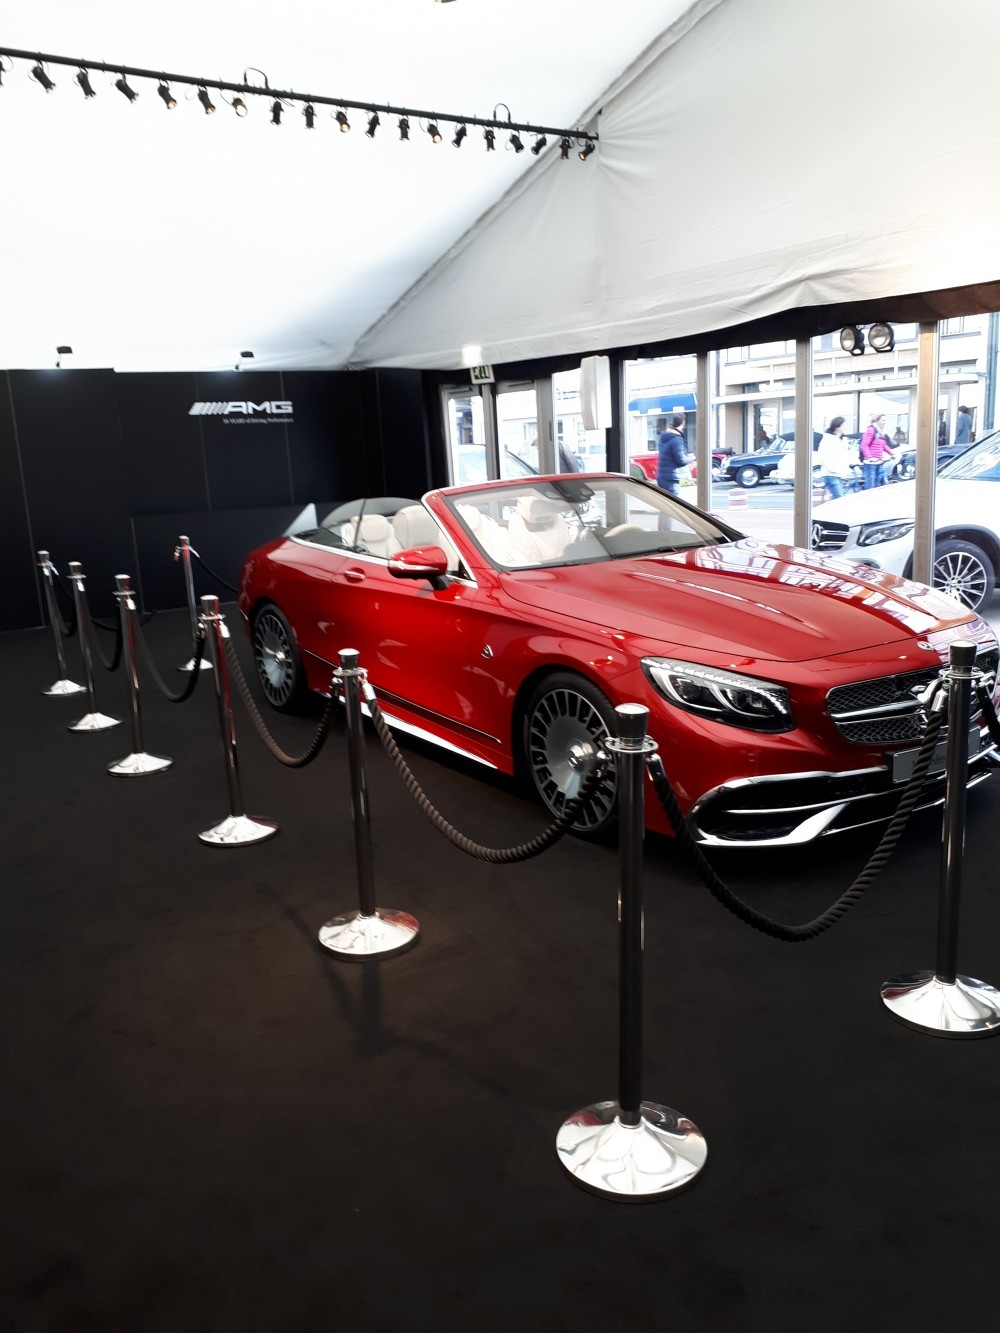 zoute grand prix-conceptexpo-mercedes AMG- pop up store- construction stand - aménagement de stand (6)